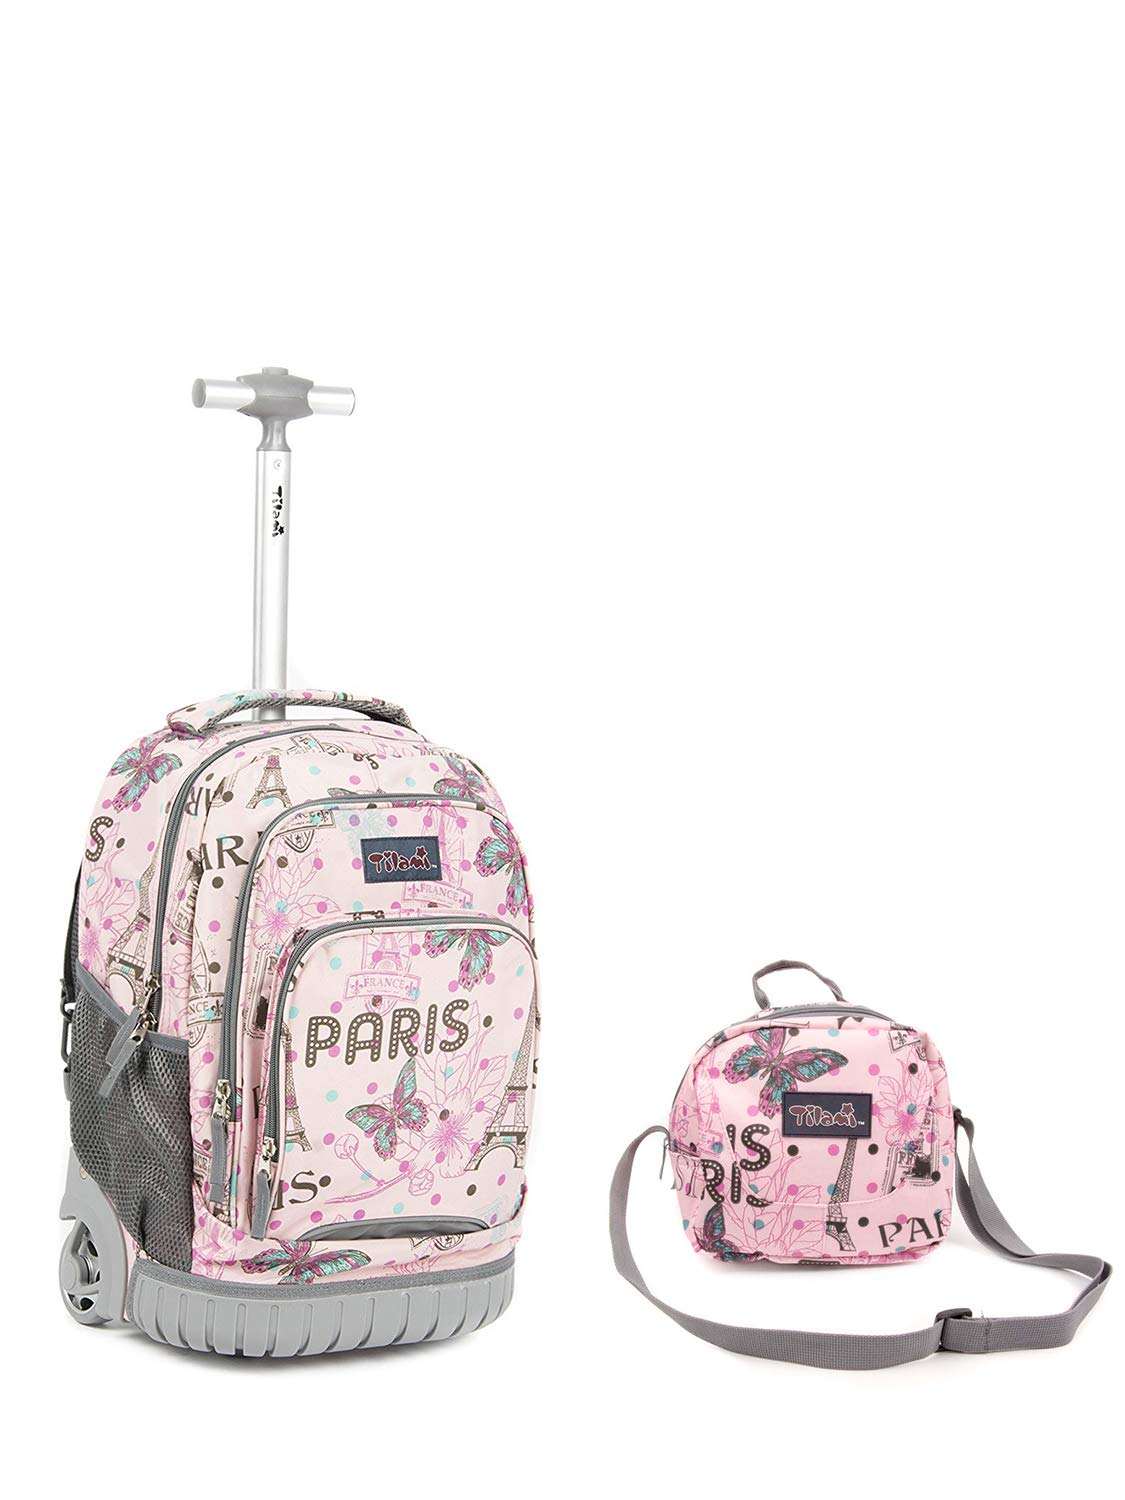 Tilami New Antifouling Design 18 Inch Wheeled Rolling Backpack Luggage and Lunch Bag, Pink Butterfly Paris by Tilami